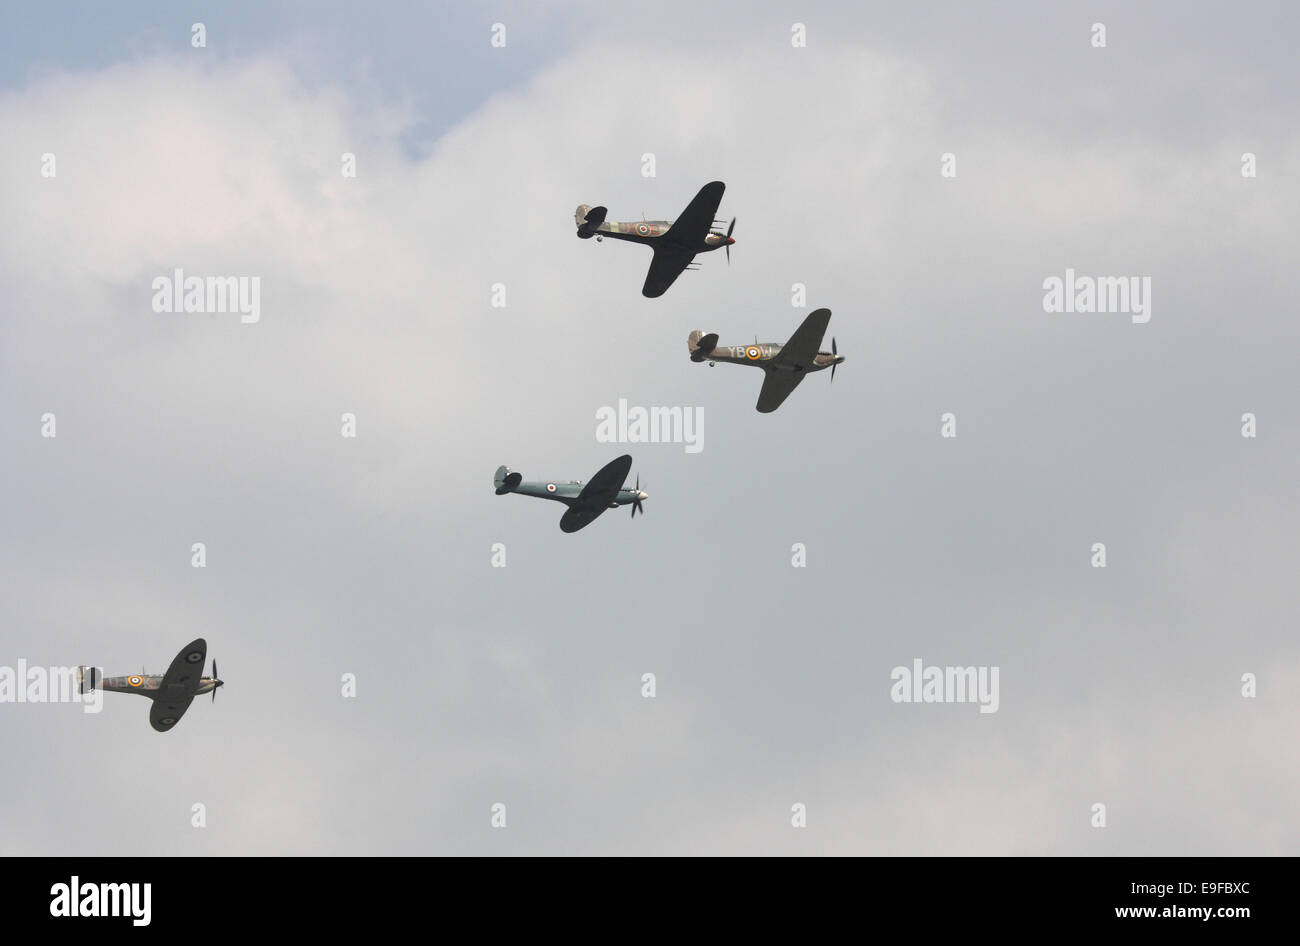 Hurricanes flying at Biggin Hill air show - Stock Image